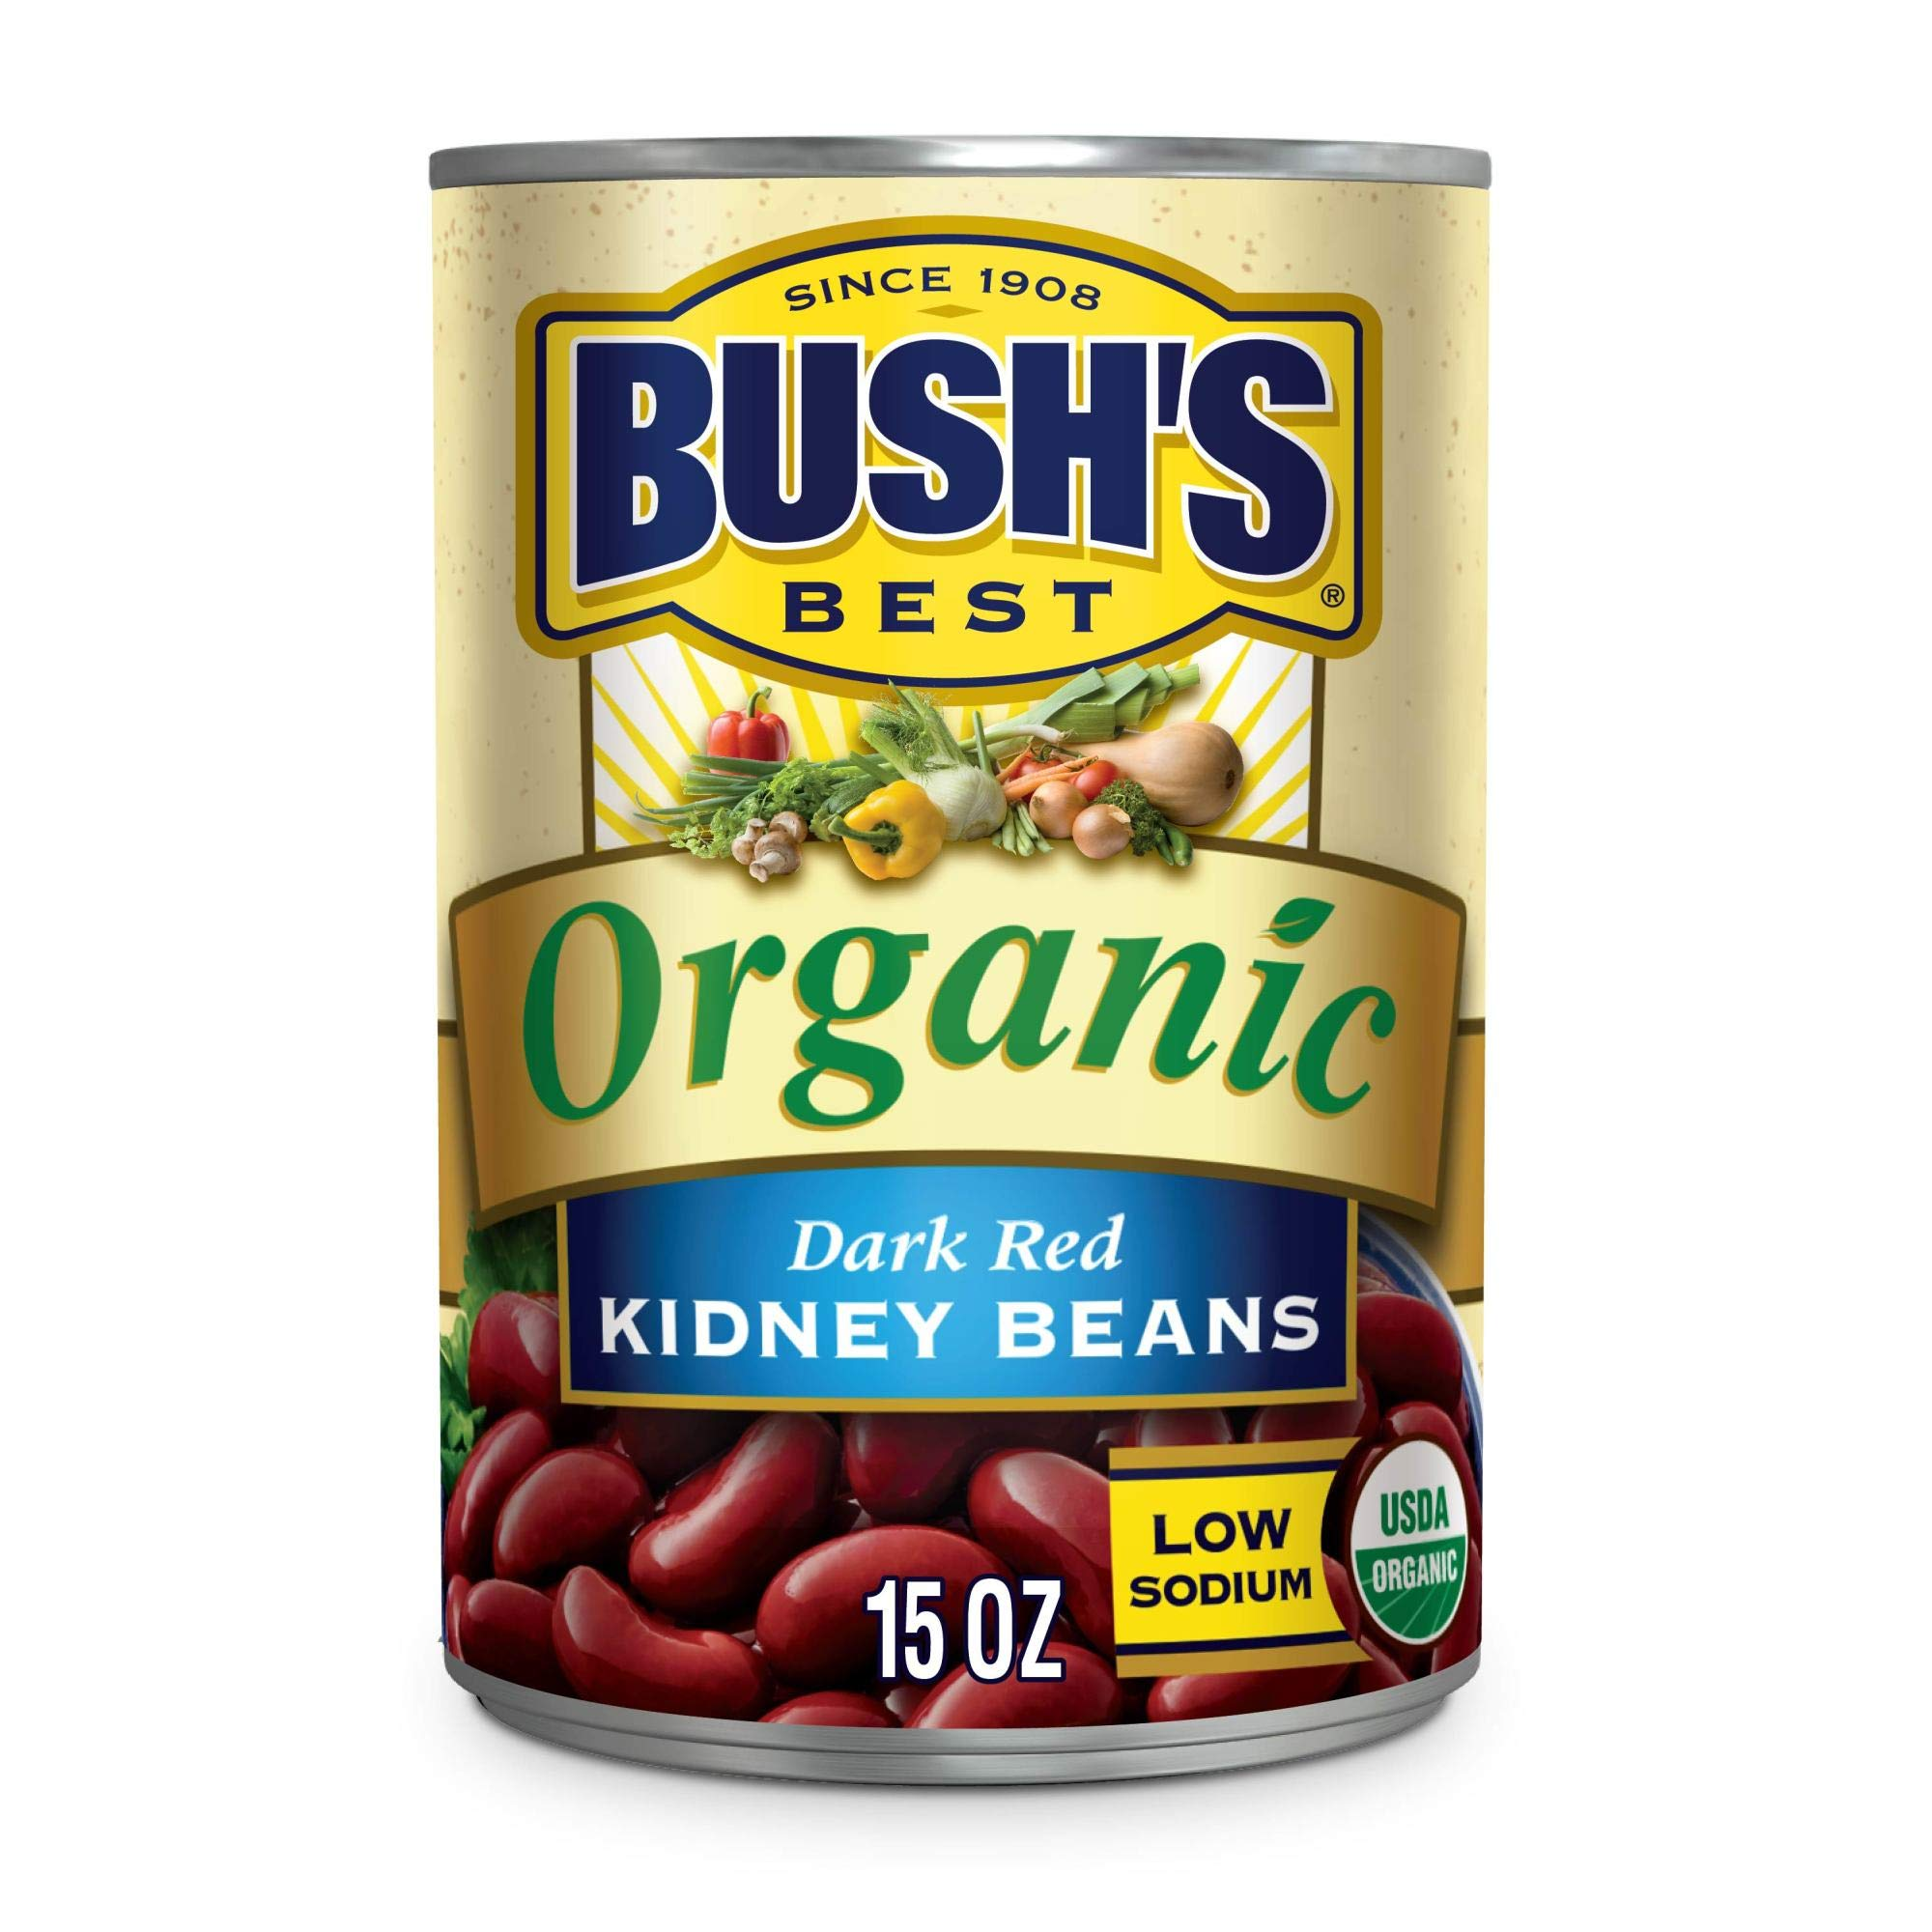 BUSH'S BEST Canned Organic Dark Red Kidney Beans (Pack of 12), Source of Plant Based Protein and Fiber, Low Fat, Gluten Free, 15 oz